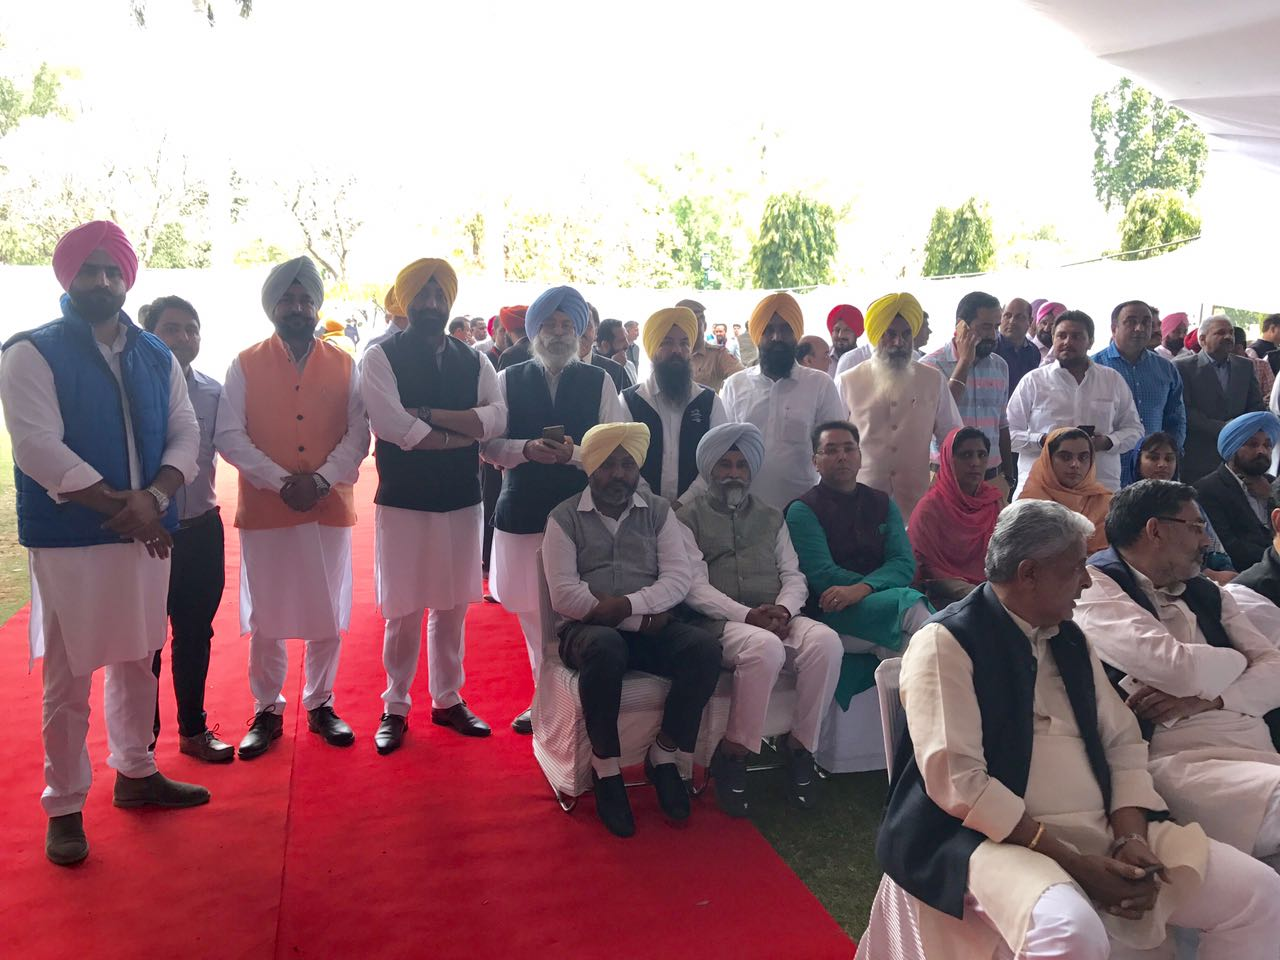 Mismanagement at swear-in-ceremony function shows  inefficiency of Congress to deal with the issues, H.S.  Phoolka.